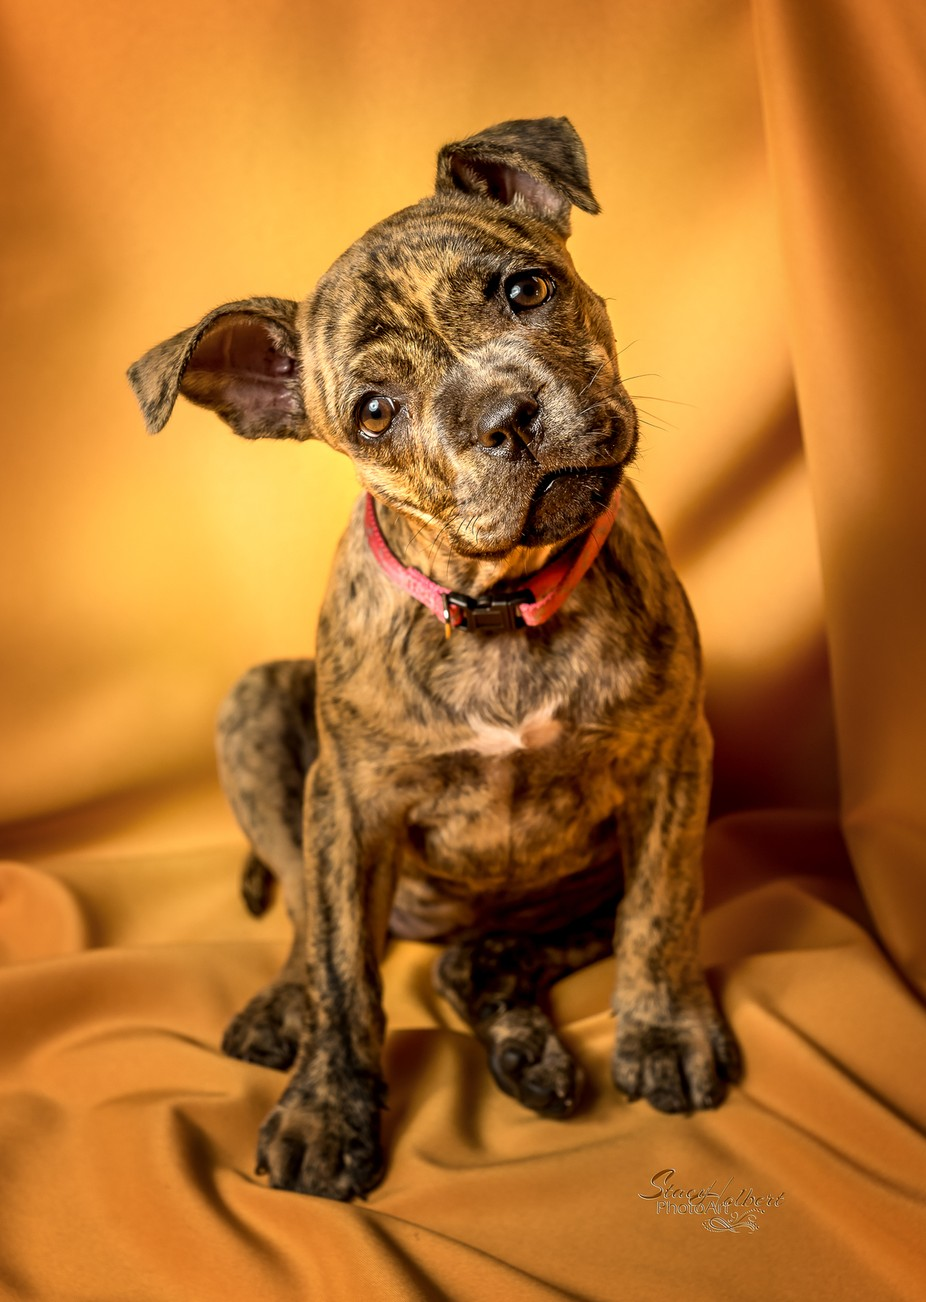 Pitbull puppy by sjholbert - Social Exposure Photo Contest Vol 16